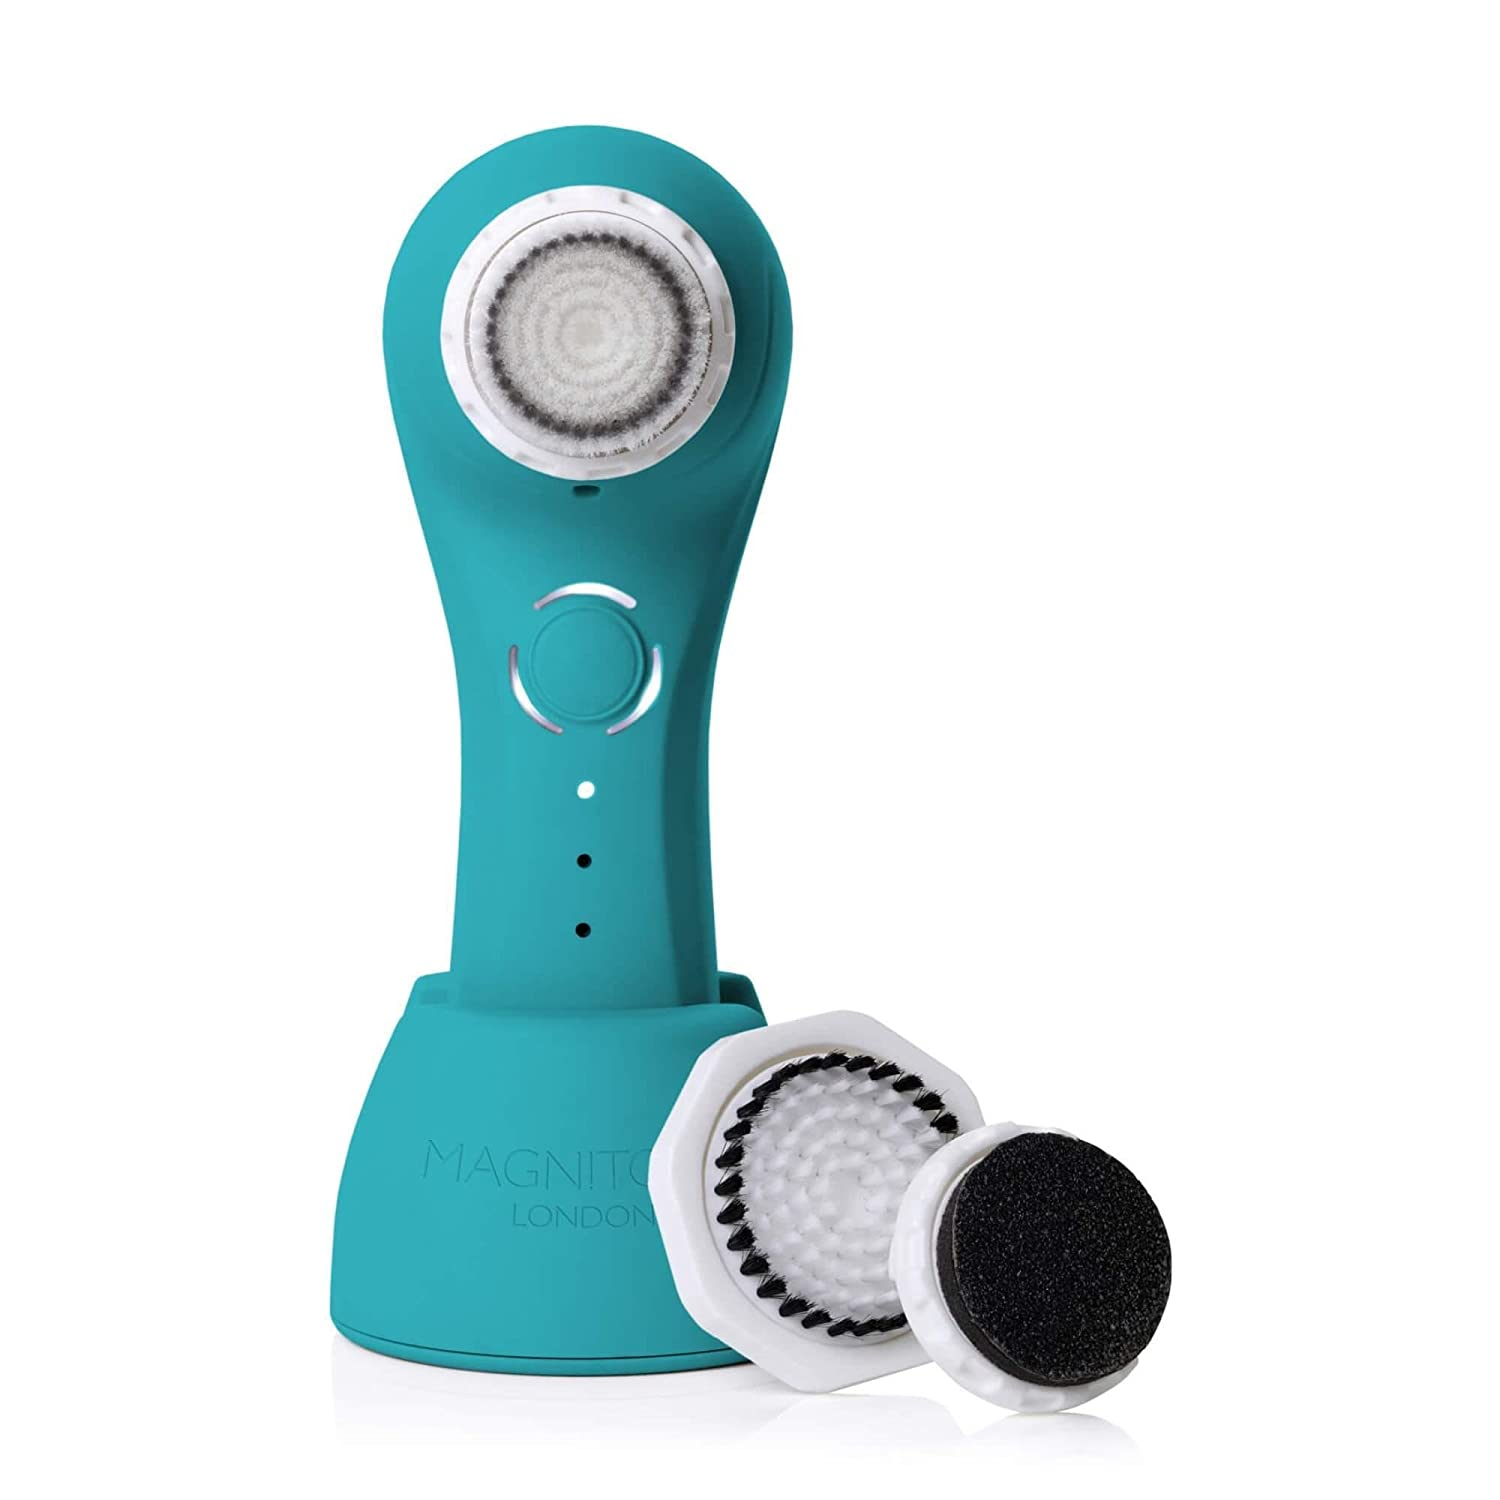 Magnitone London Full Monty Vibra-Sonic 3-in-1 Face and Body Cleansing Brush with 3 Interchangeable Brush Heads, Electric Blue MP03EB